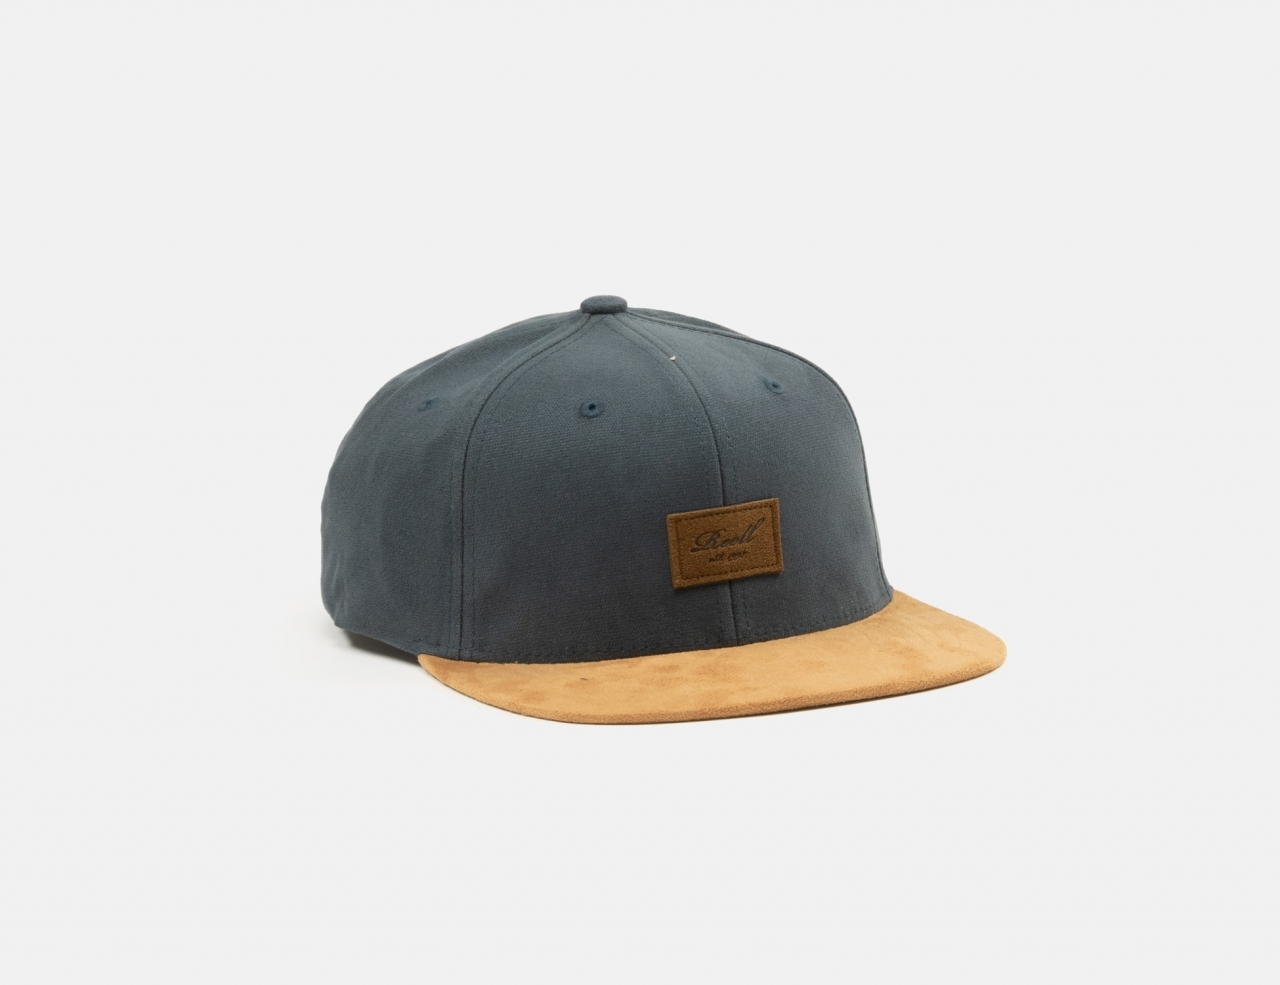 Reell Jeans Reell Suede Cap